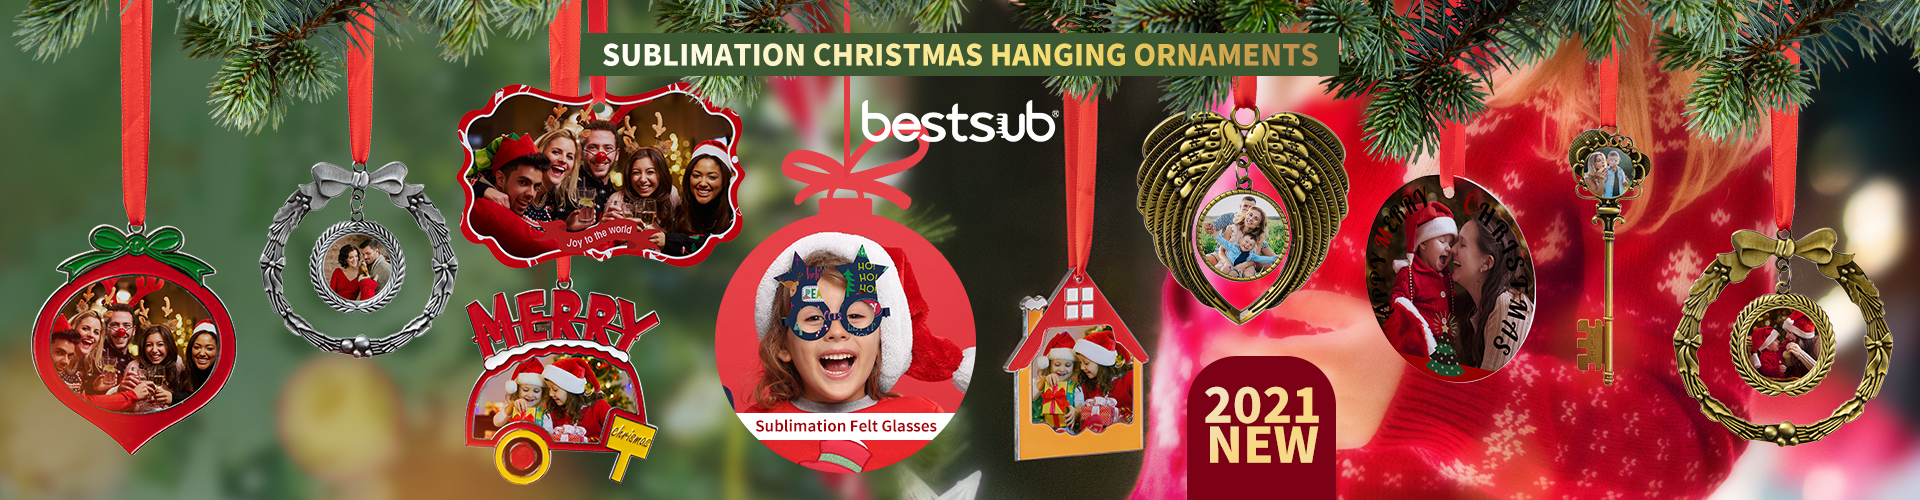 2021-05-21_New_Sublimation_Christmas_Hanging_Ornaments_new_web